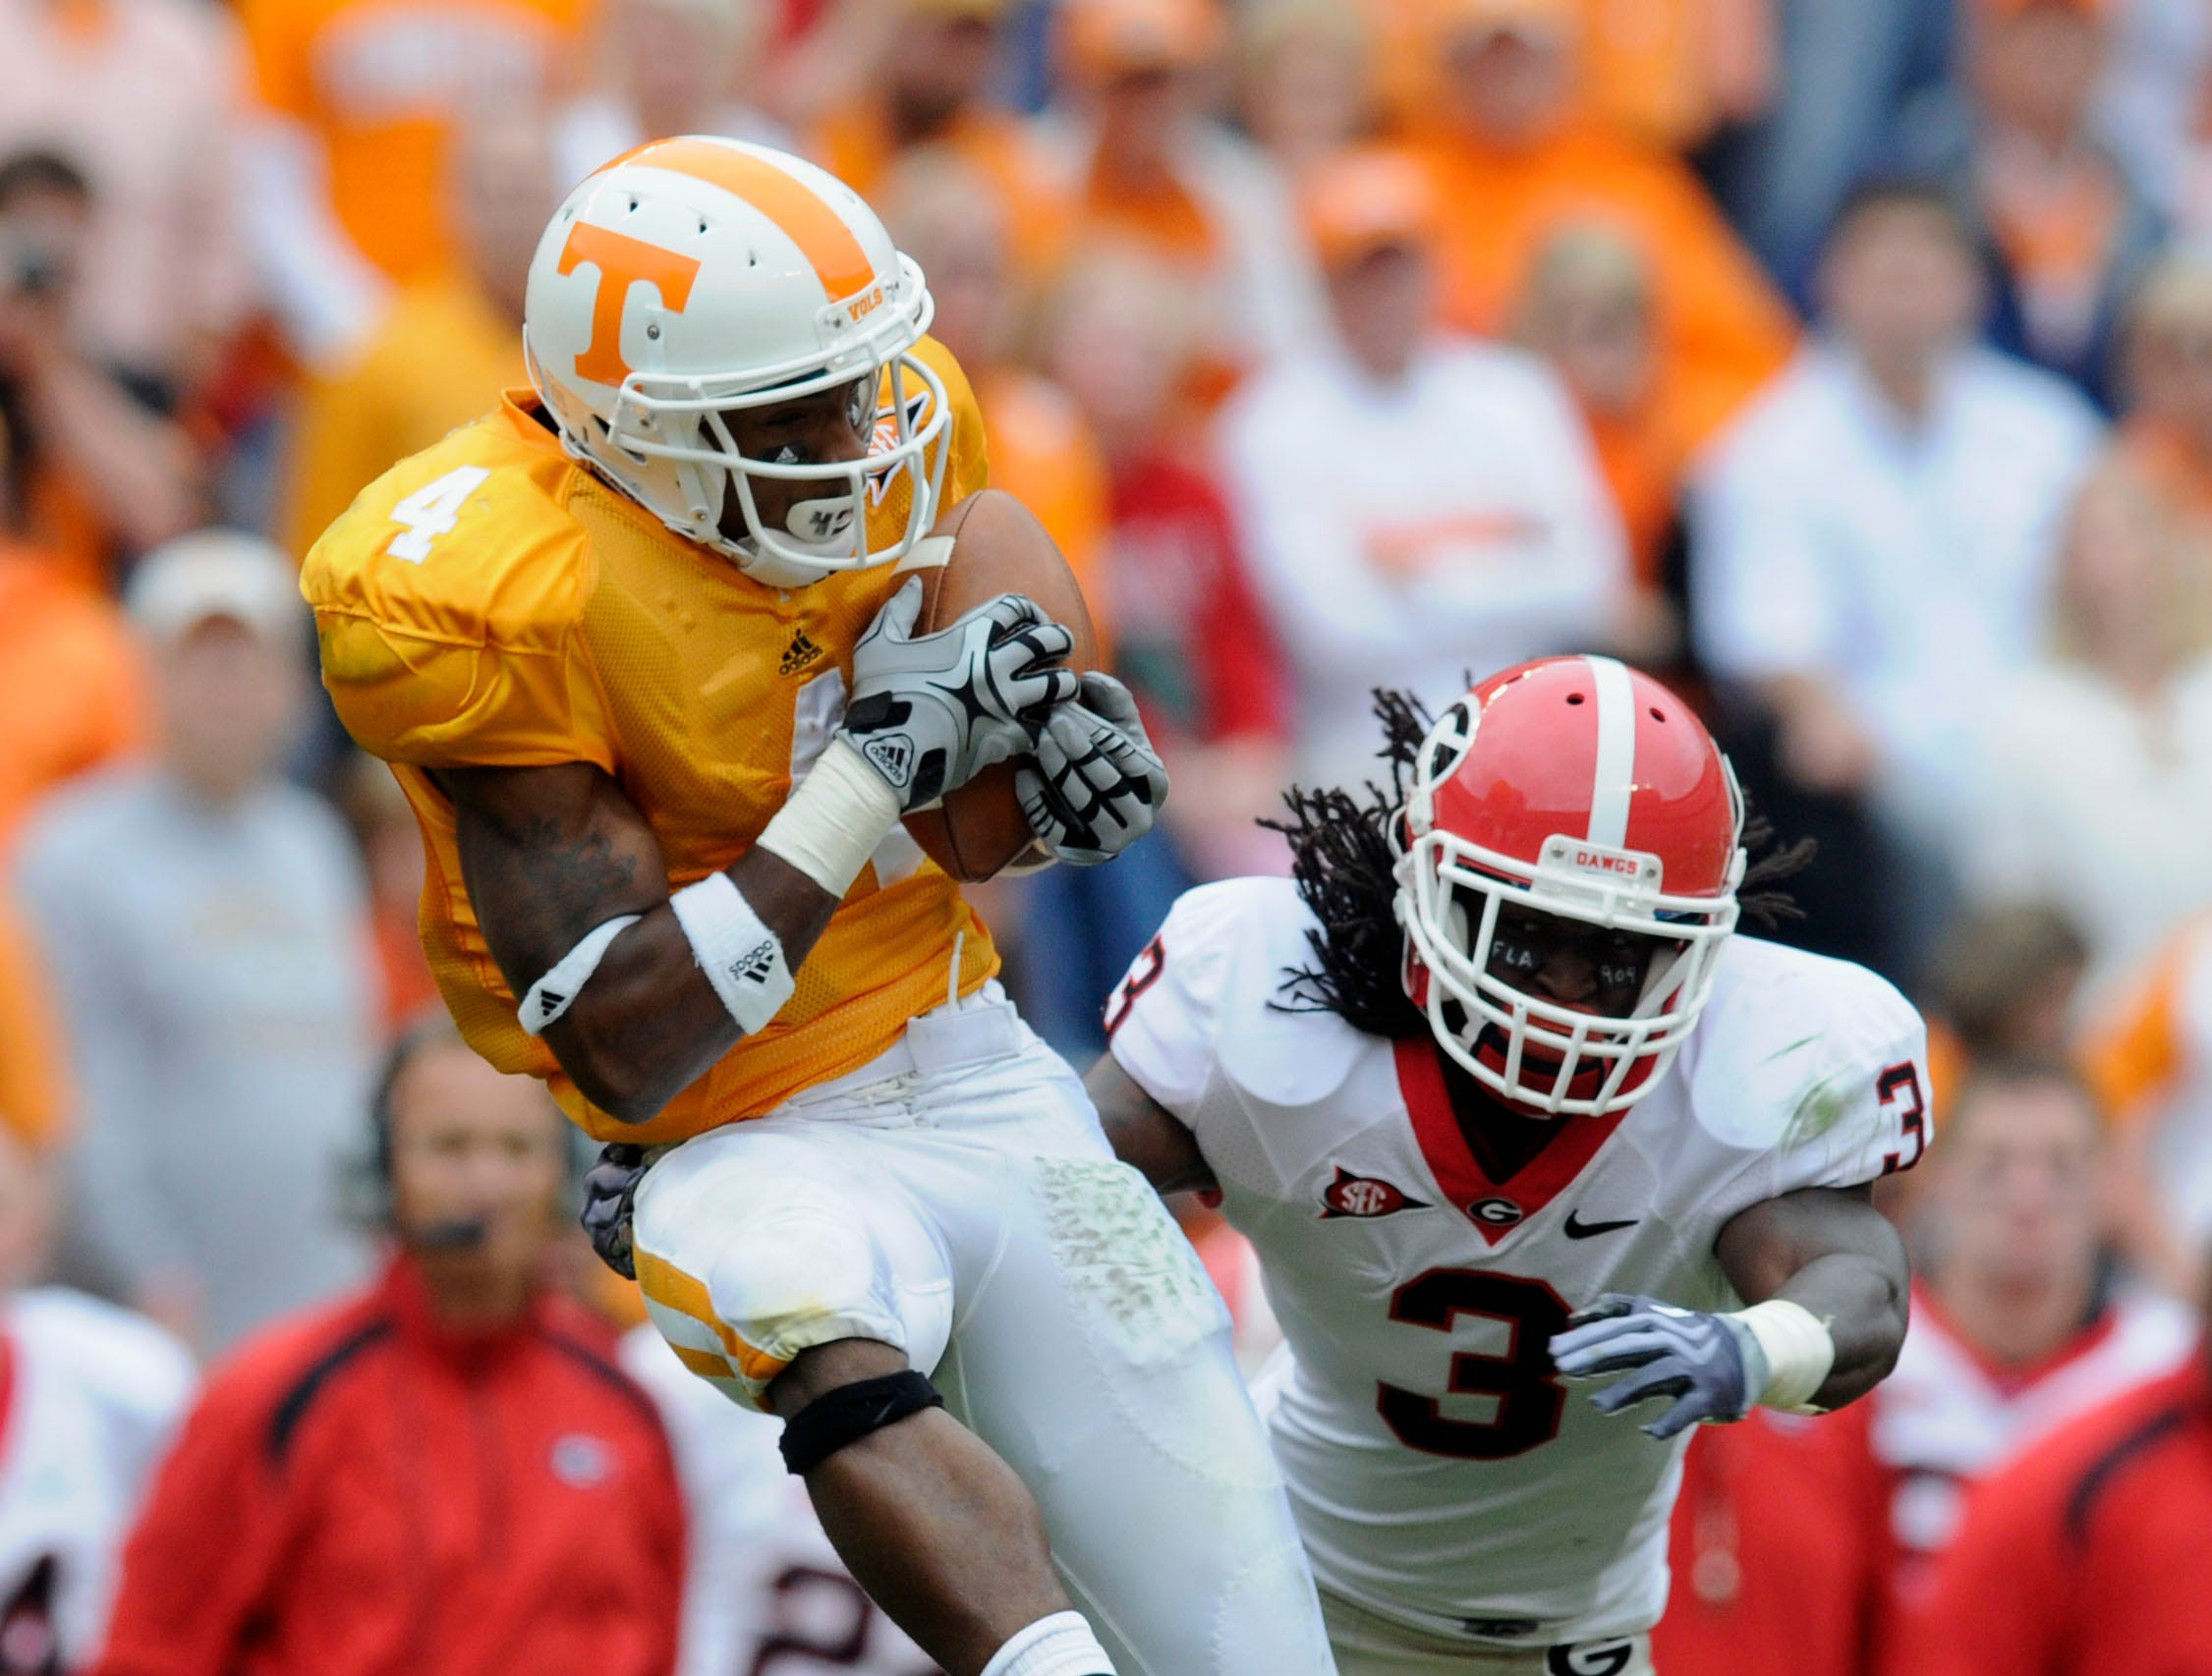 Tennessee wide receiver Gerald Jones (4) catches a pass ahead of Georgia safety Bryan Evans (3) for a 33-yard gain during their game  on Saturday, Oct. 10, 2009 at Neyland Stadium.